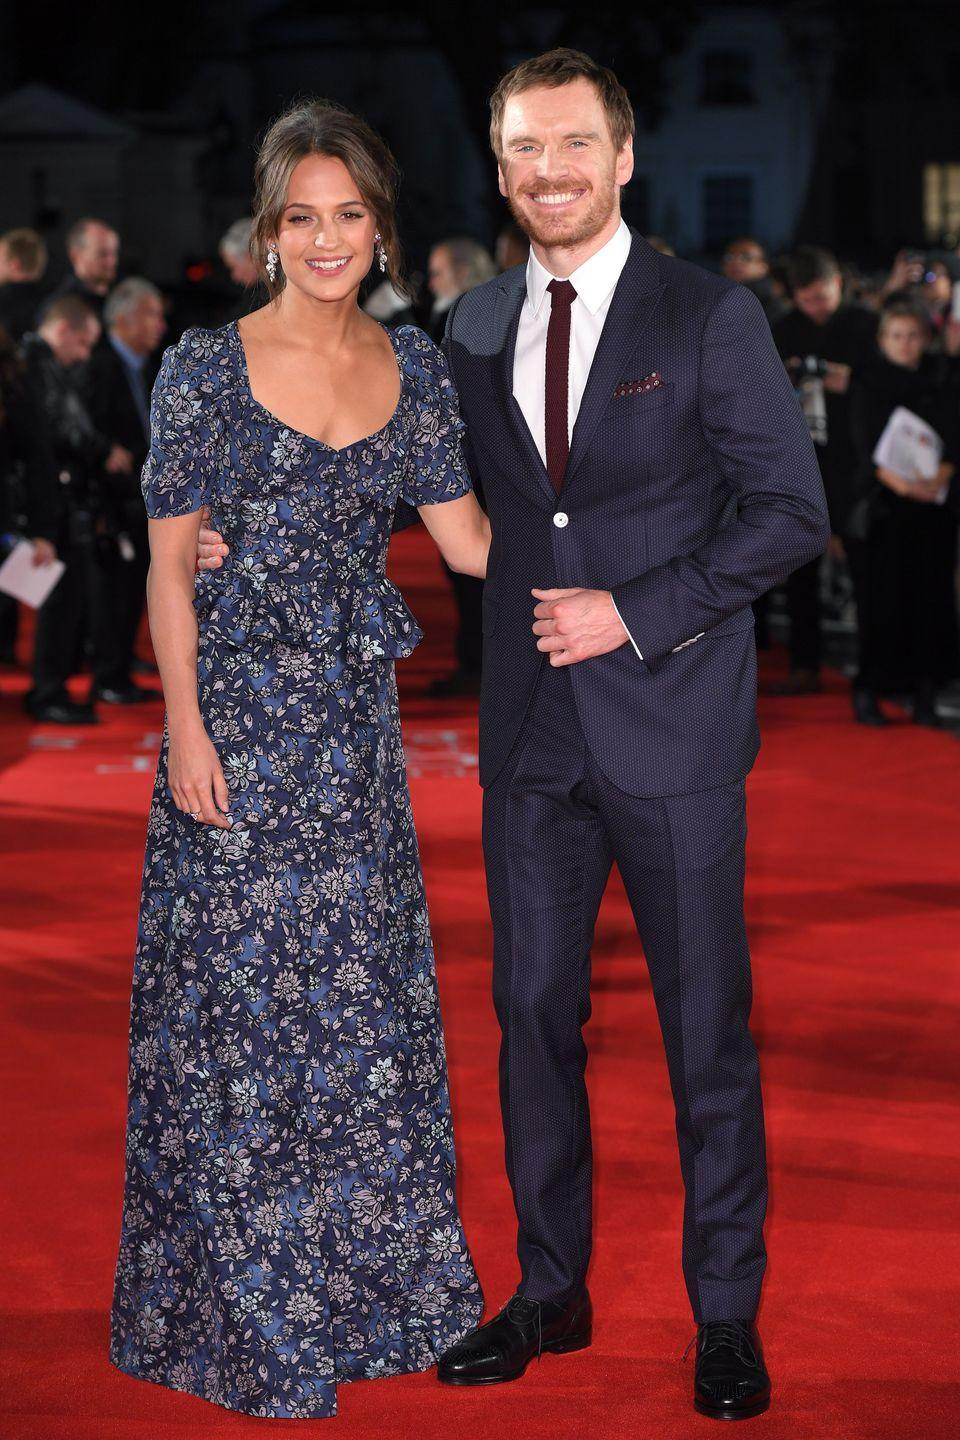 """<p><strong>How long they've been together: </strong>After falling in love on the set of their film <em>The Light Between Two Oceans</em> in 2014, the two A-list actors tied the knot in a secret ceremony in the summer of 2017. </p><p><strong>Why you forgot they're <strong>together</strong>: </strong>They're one of the most elusive couples in Hollywood, making very few public appearances together and remaining tight-lipped about their relationship. """"I think we've made a clear statement that we keep certain things just between us. It was very easy to unite, but that's quite personal,"""" Fassbender told<a href=""""https://ew.com/article/2016/09/02/michael-fassbender-alicia-vikander-light-between-oceans/"""" rel=""""nofollow noopener"""" target=""""_blank"""" data-ylk=""""slk:Entertainment Weekly"""" class=""""link rapid-noclick-resp""""> <em>Entertainment Weekly</em></a>. <strong><br></strong></p>"""